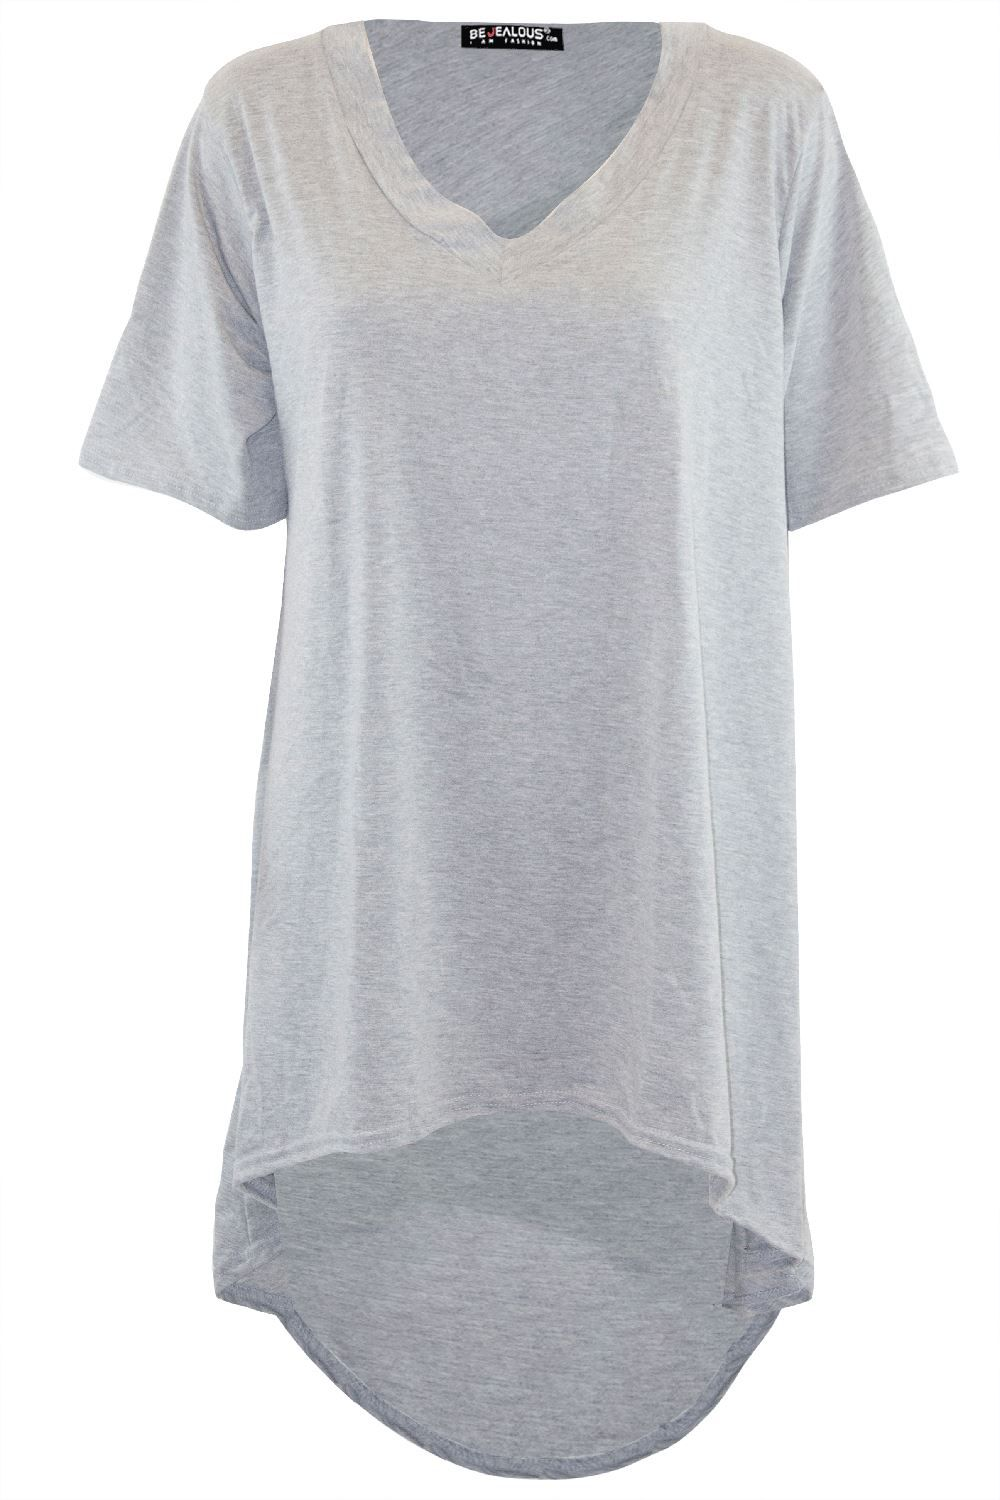 New Ladies Oversized Dipped Hem High Low Baggy Tops 8-26